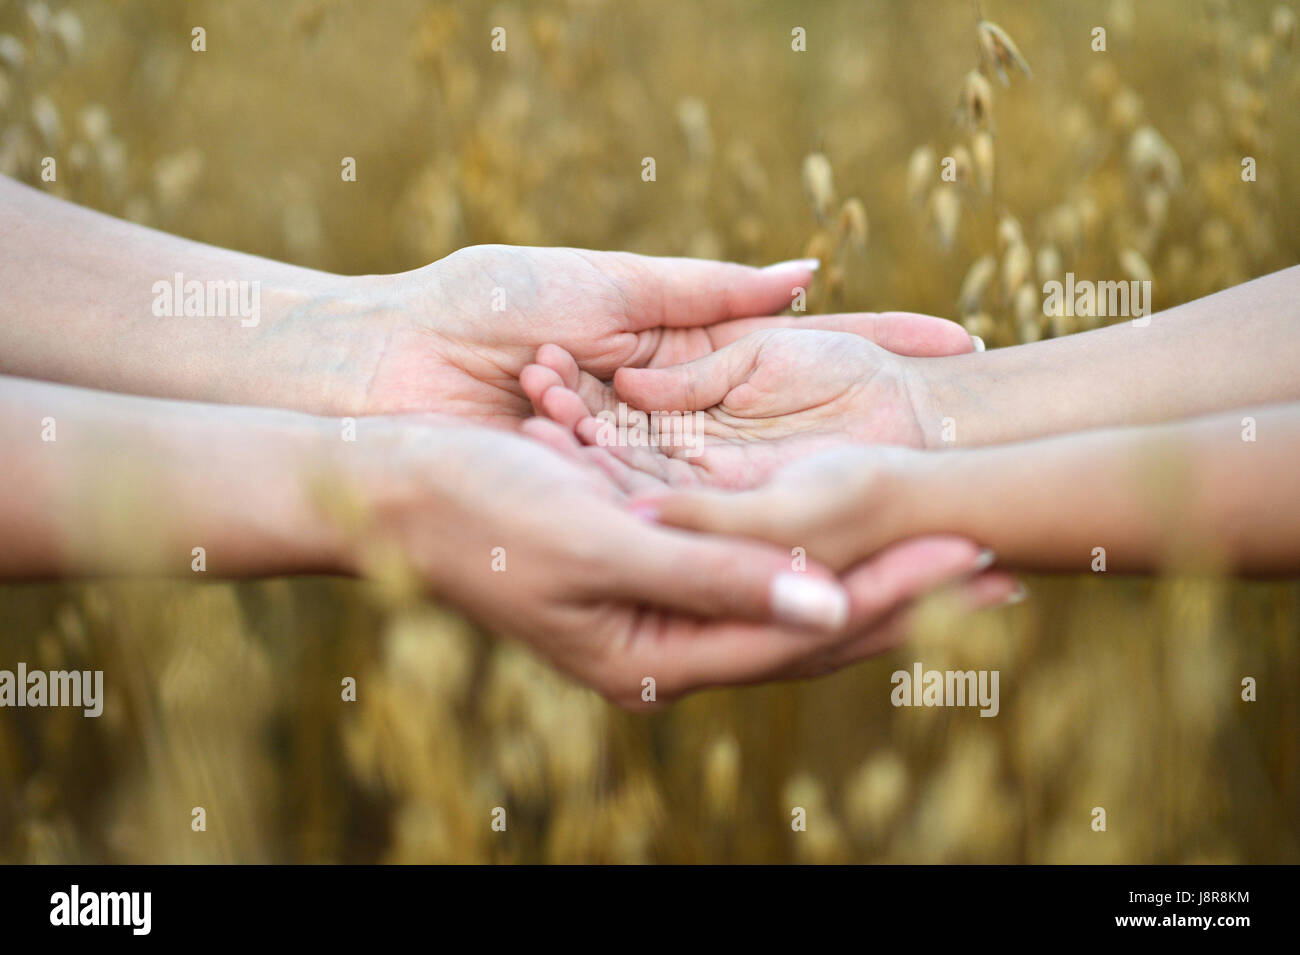 Mother holding childrens hands - Stock Image